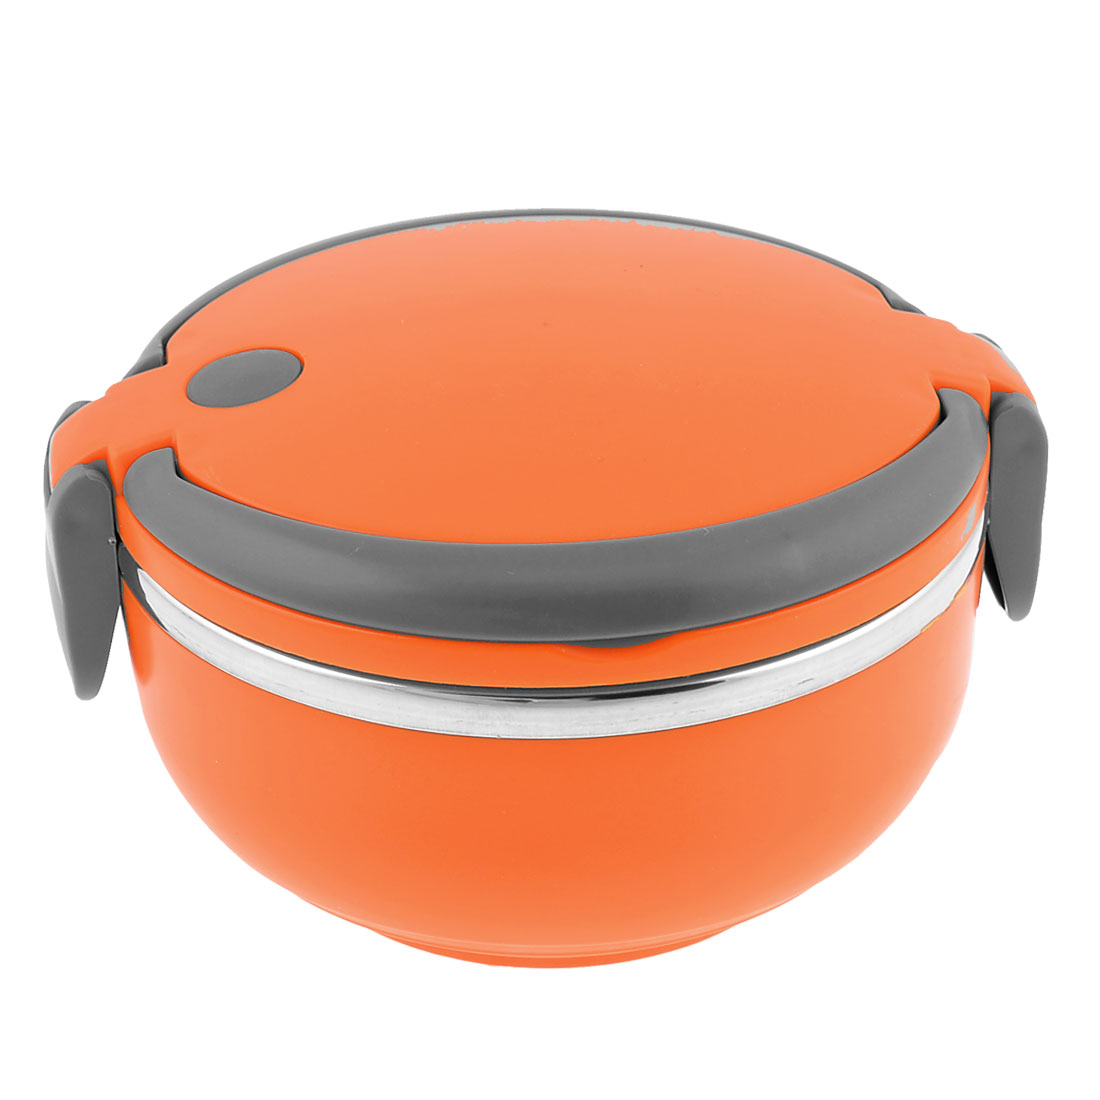 0.8L Orange Round Shape Plastic Gray Handle Food Lunch Box Container